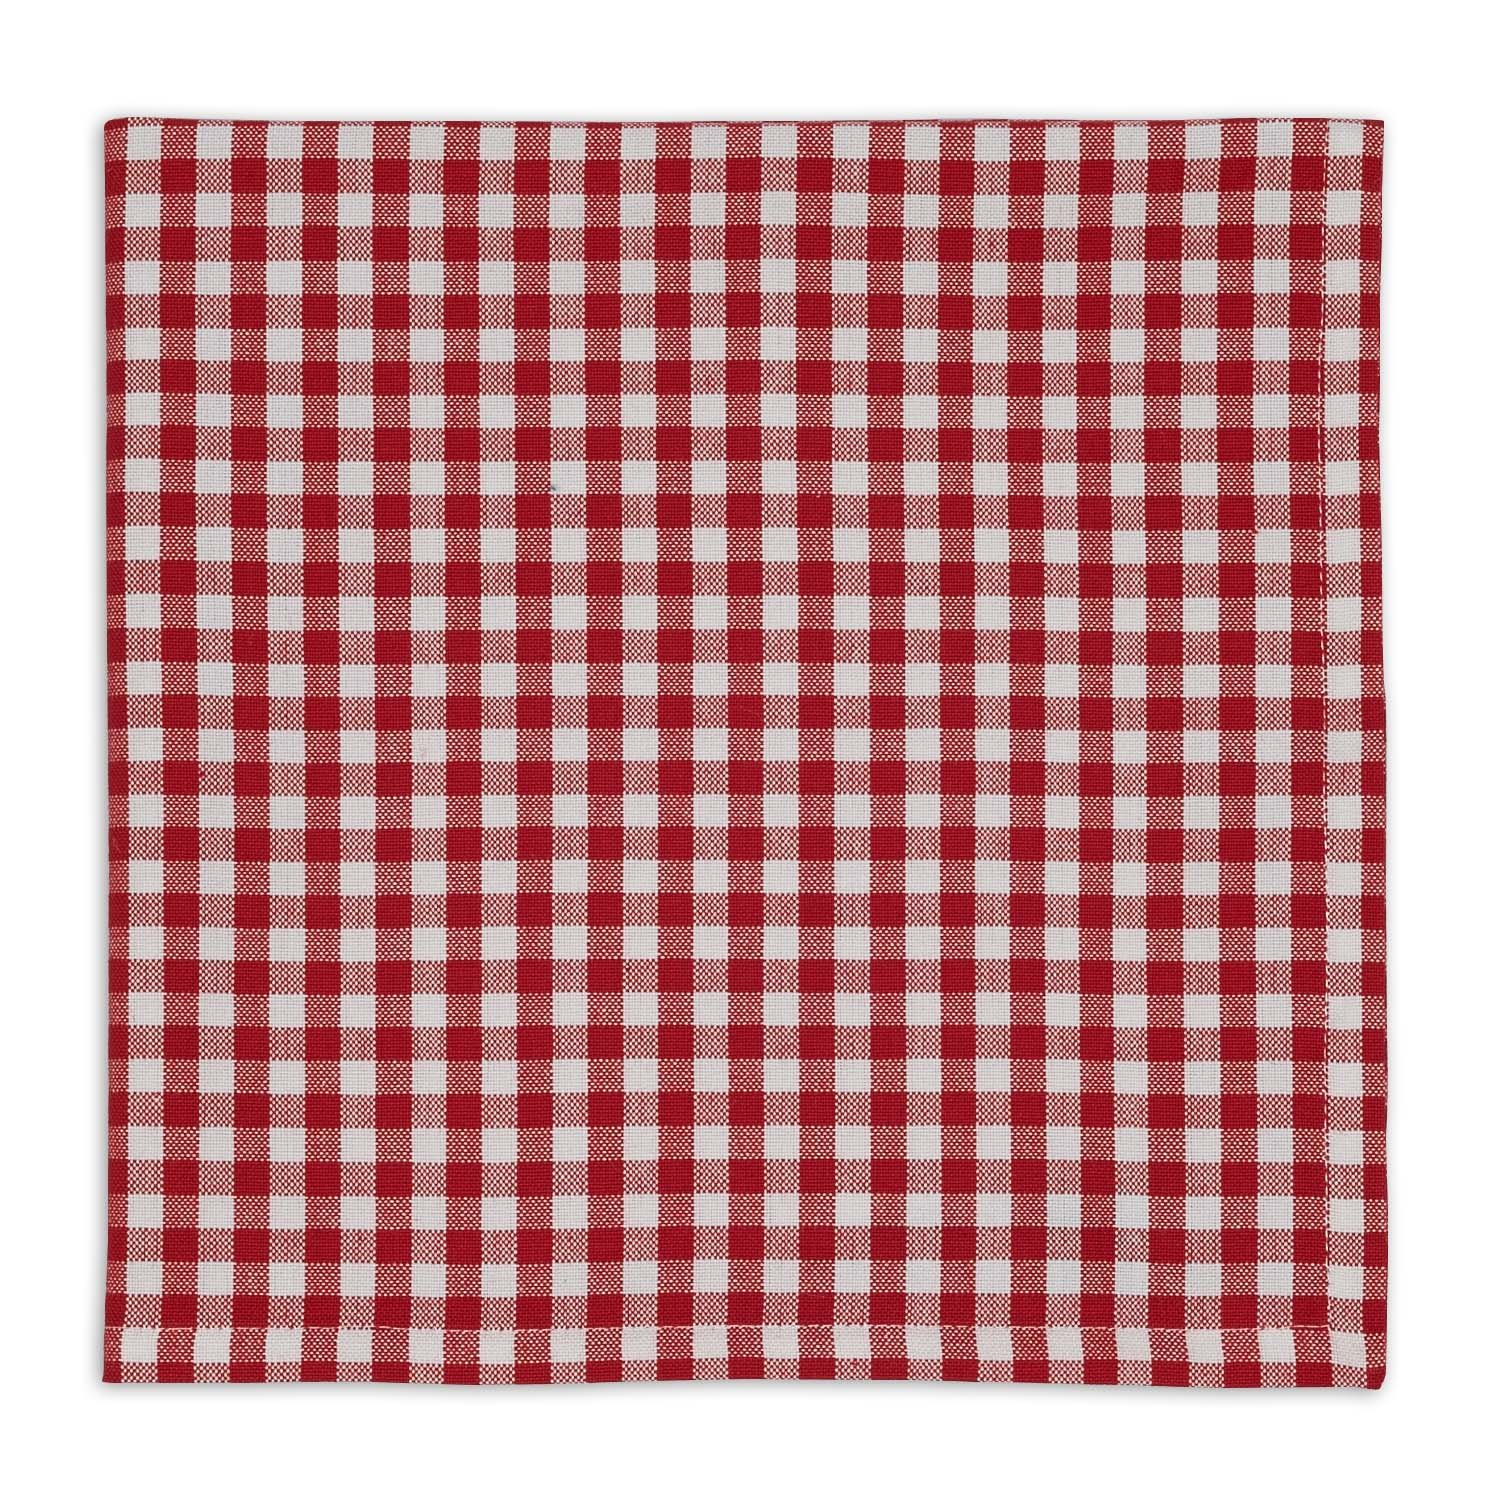 DII Oversized 20x20'' Cotton Napkin, Pack of 6, Tango Red Check - Perfect for Fall, Thanksgiving, Dinner Parties, Farmhouse Décor, Christmas or Everyday Use